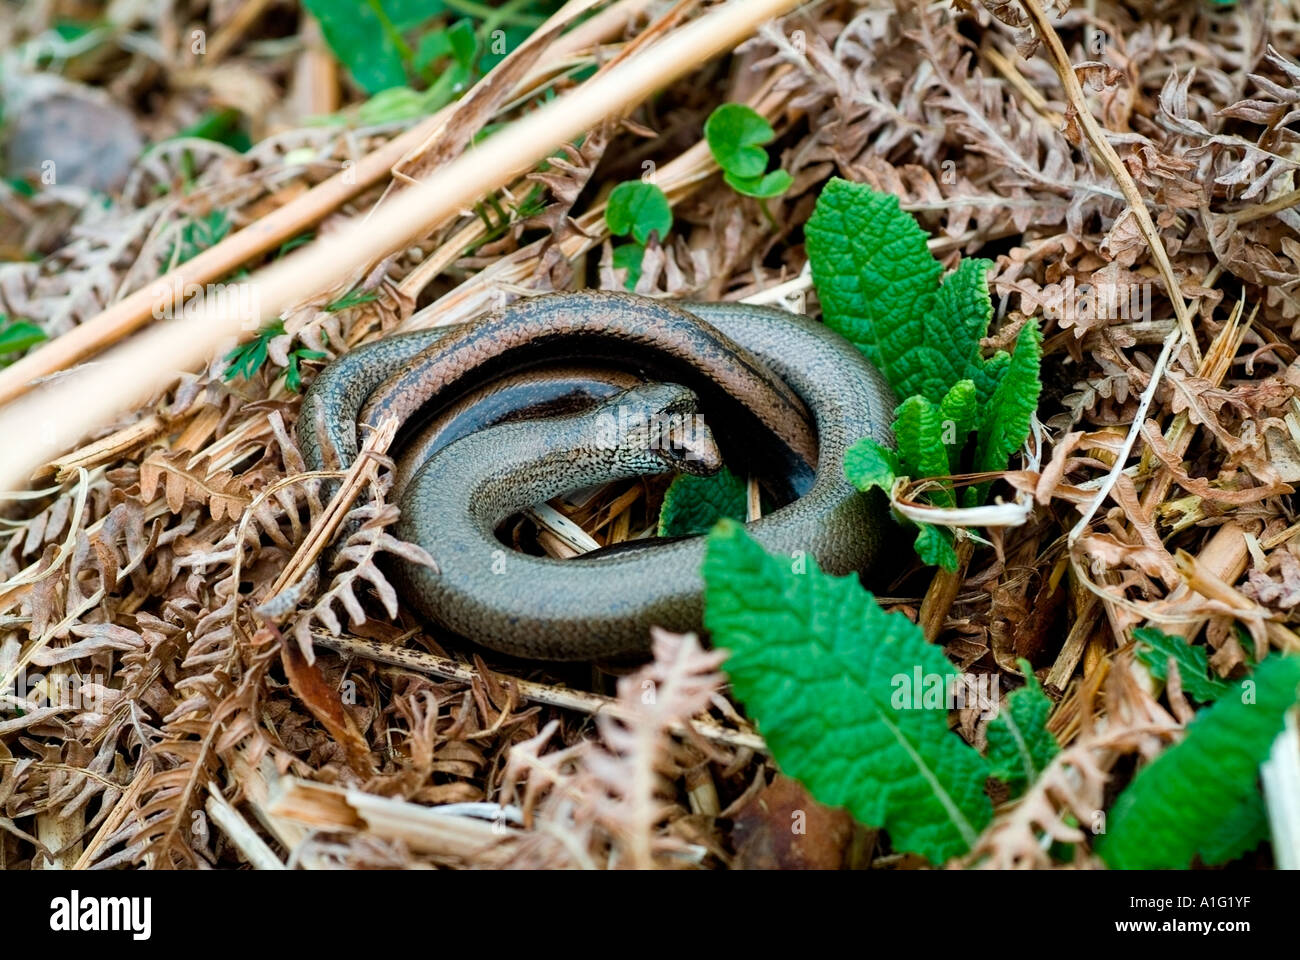 Biting embrace of Slow-worms in bracken Stock Photo